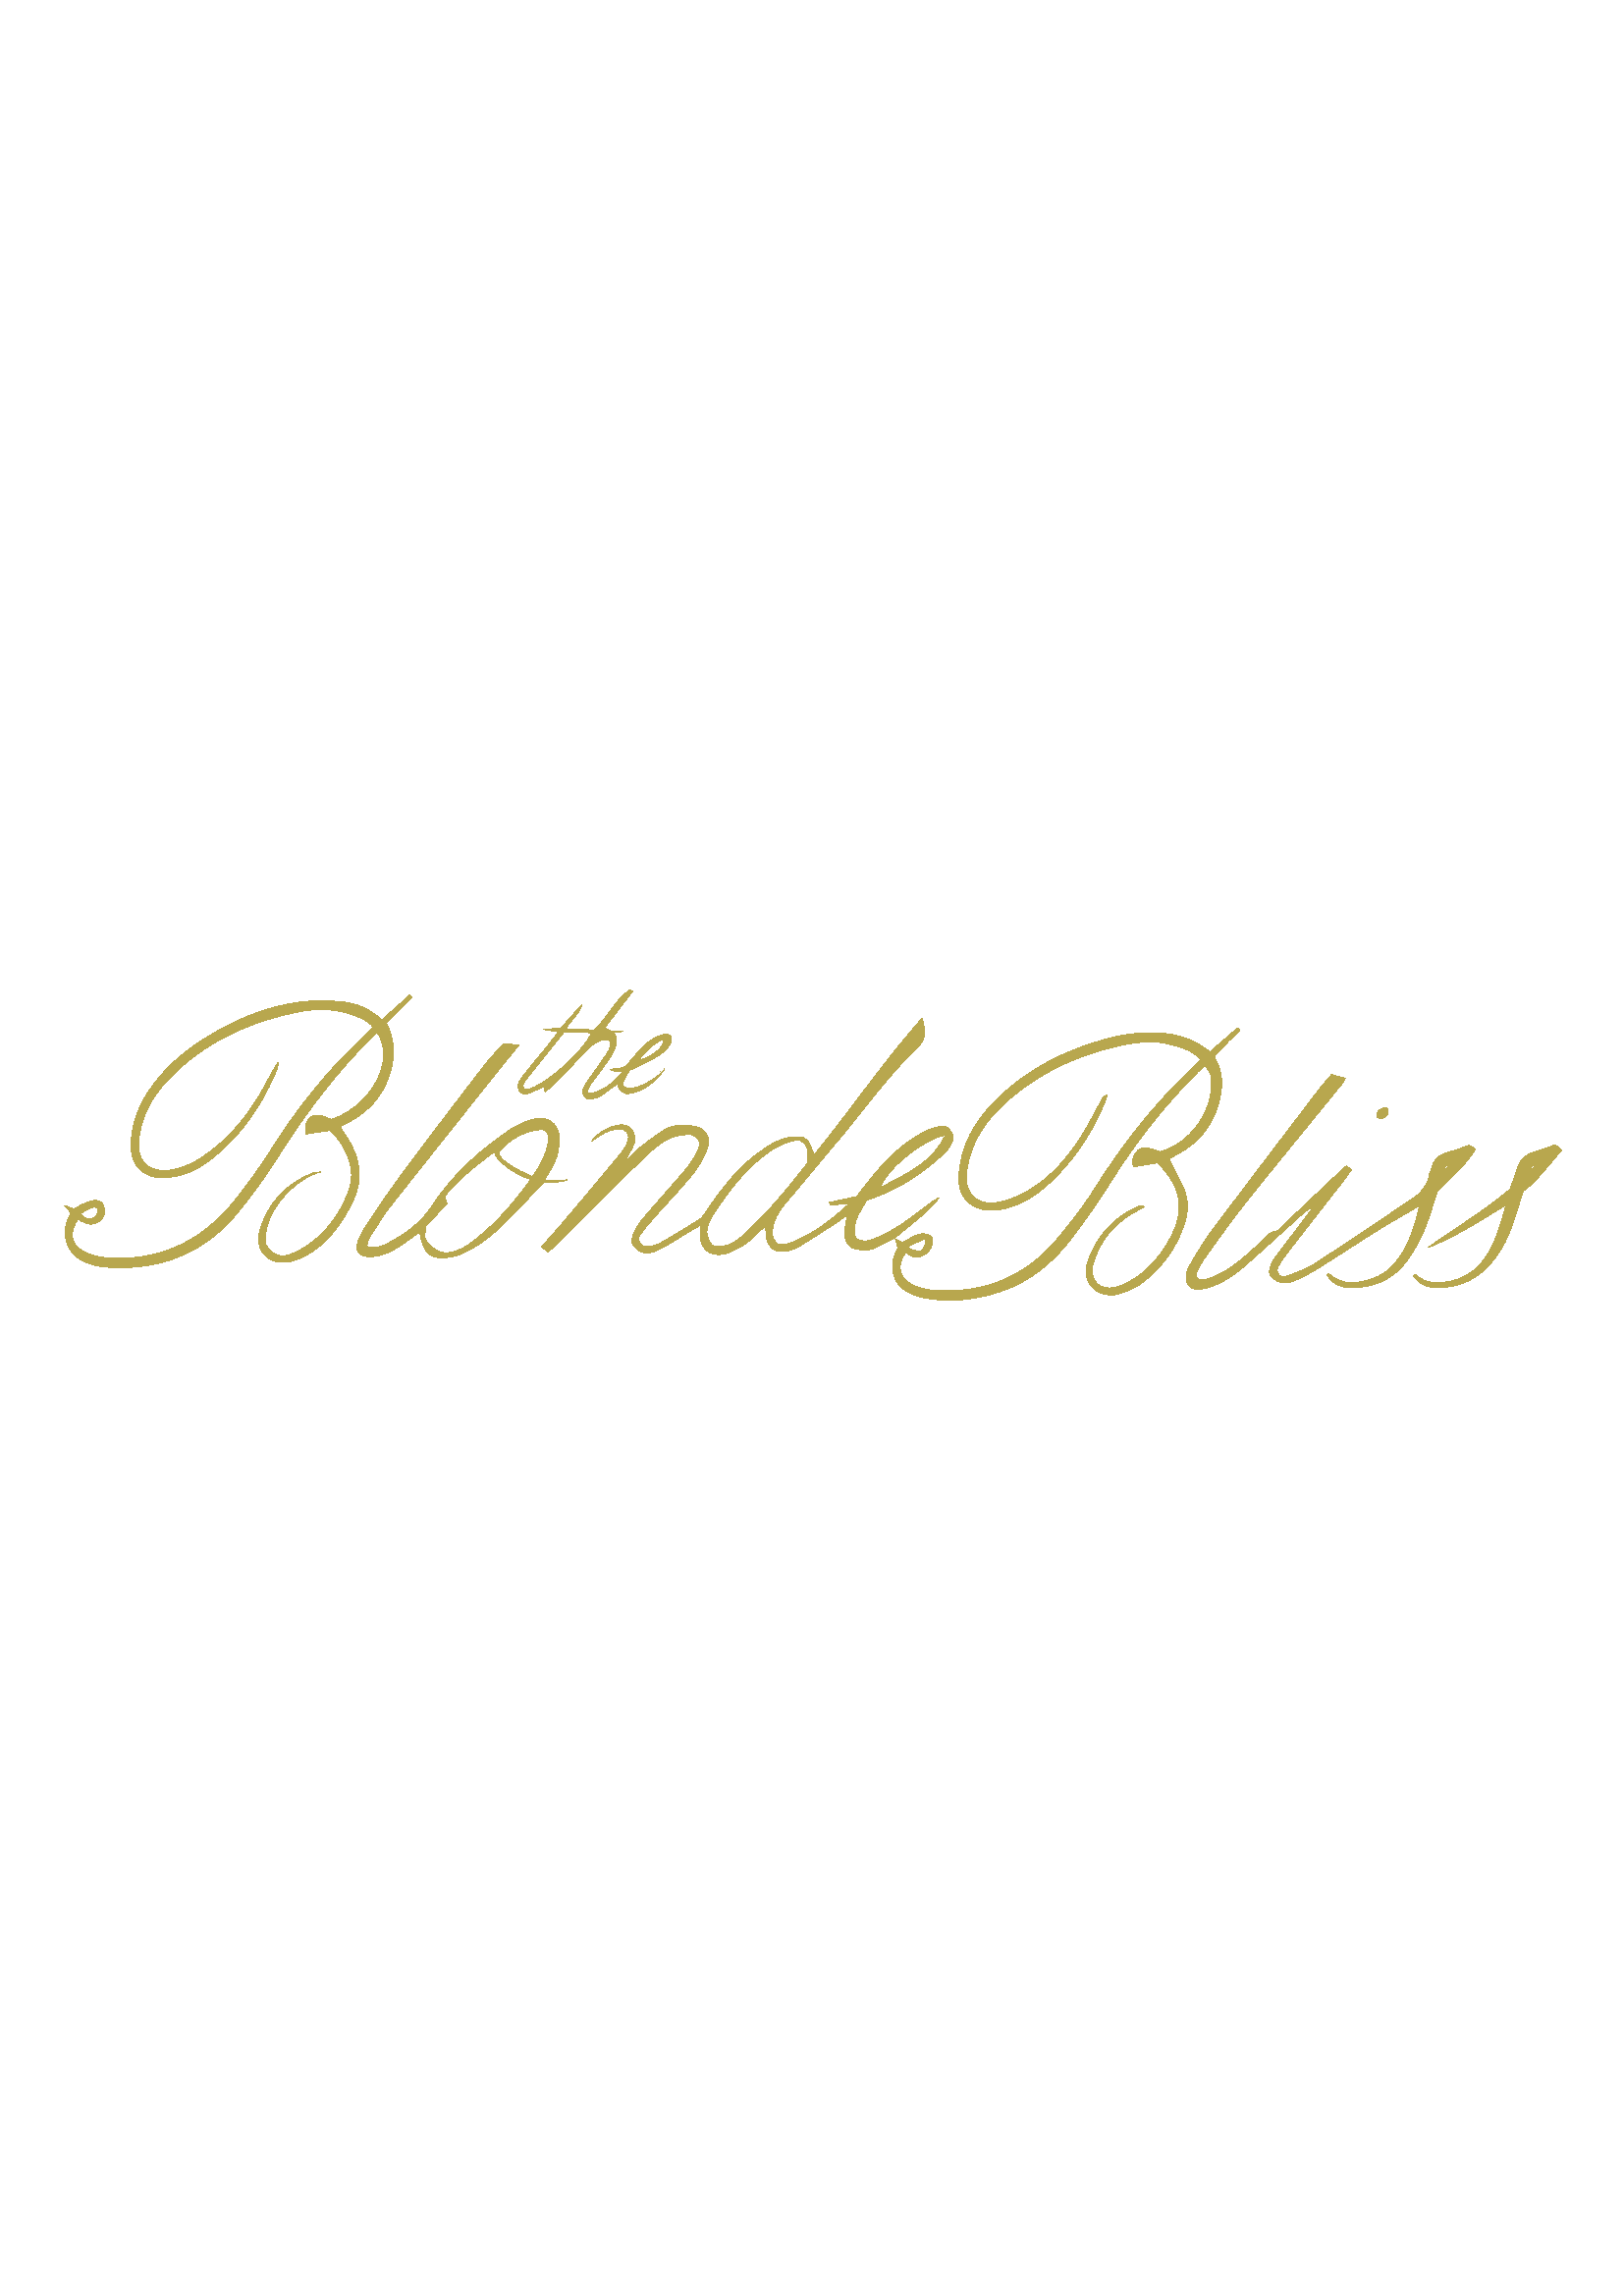 TheBlondeBliss_gold.png